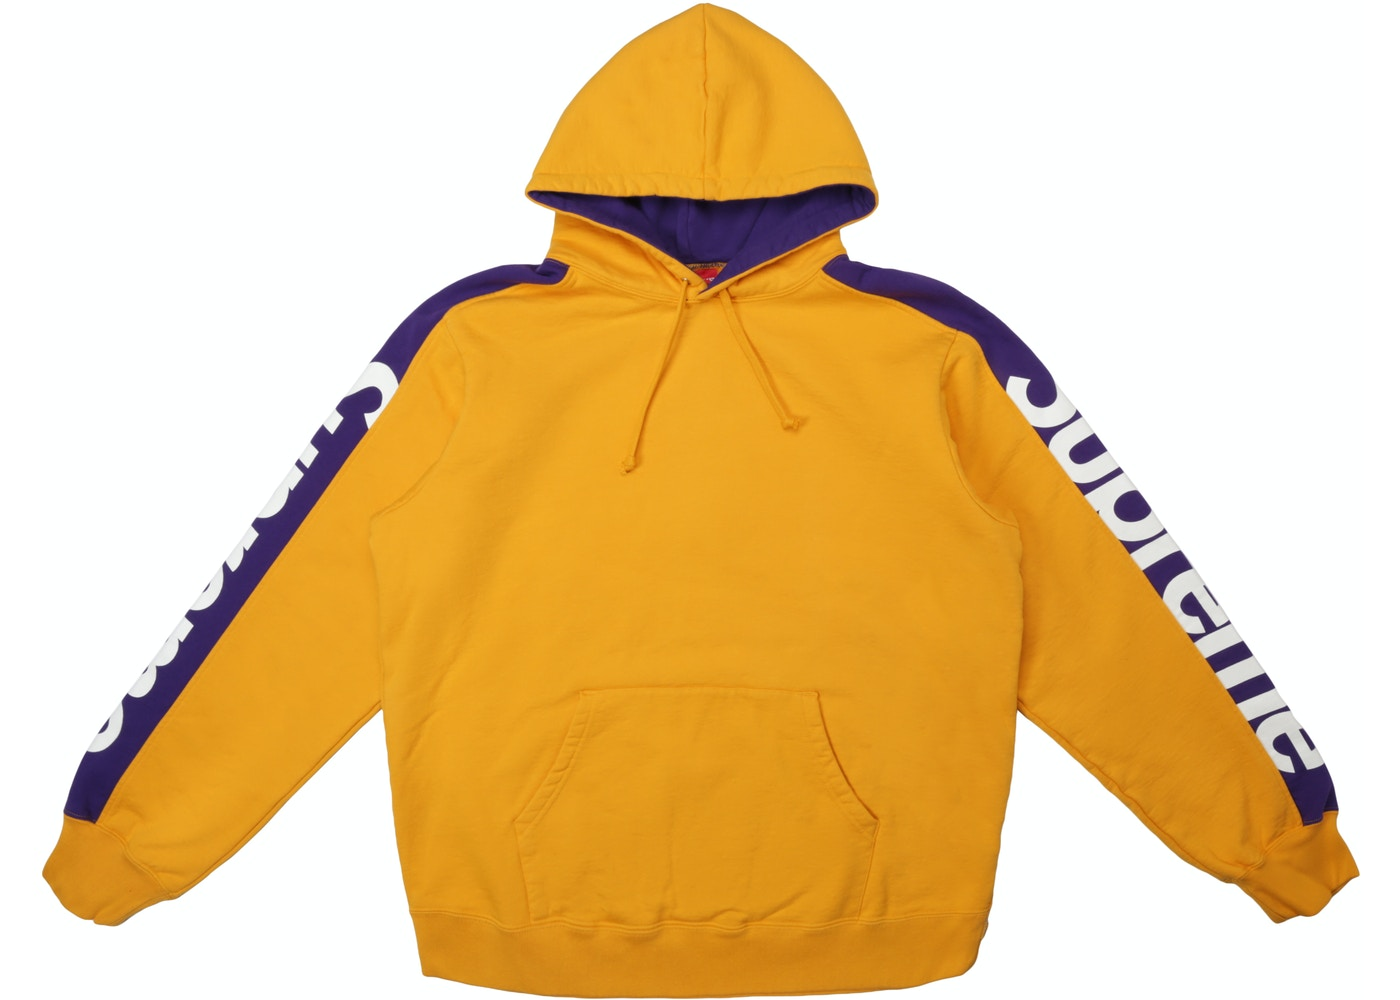 b94ecd75a055 Supreme Sideline Hooded Sweatshirt Gold - SS18